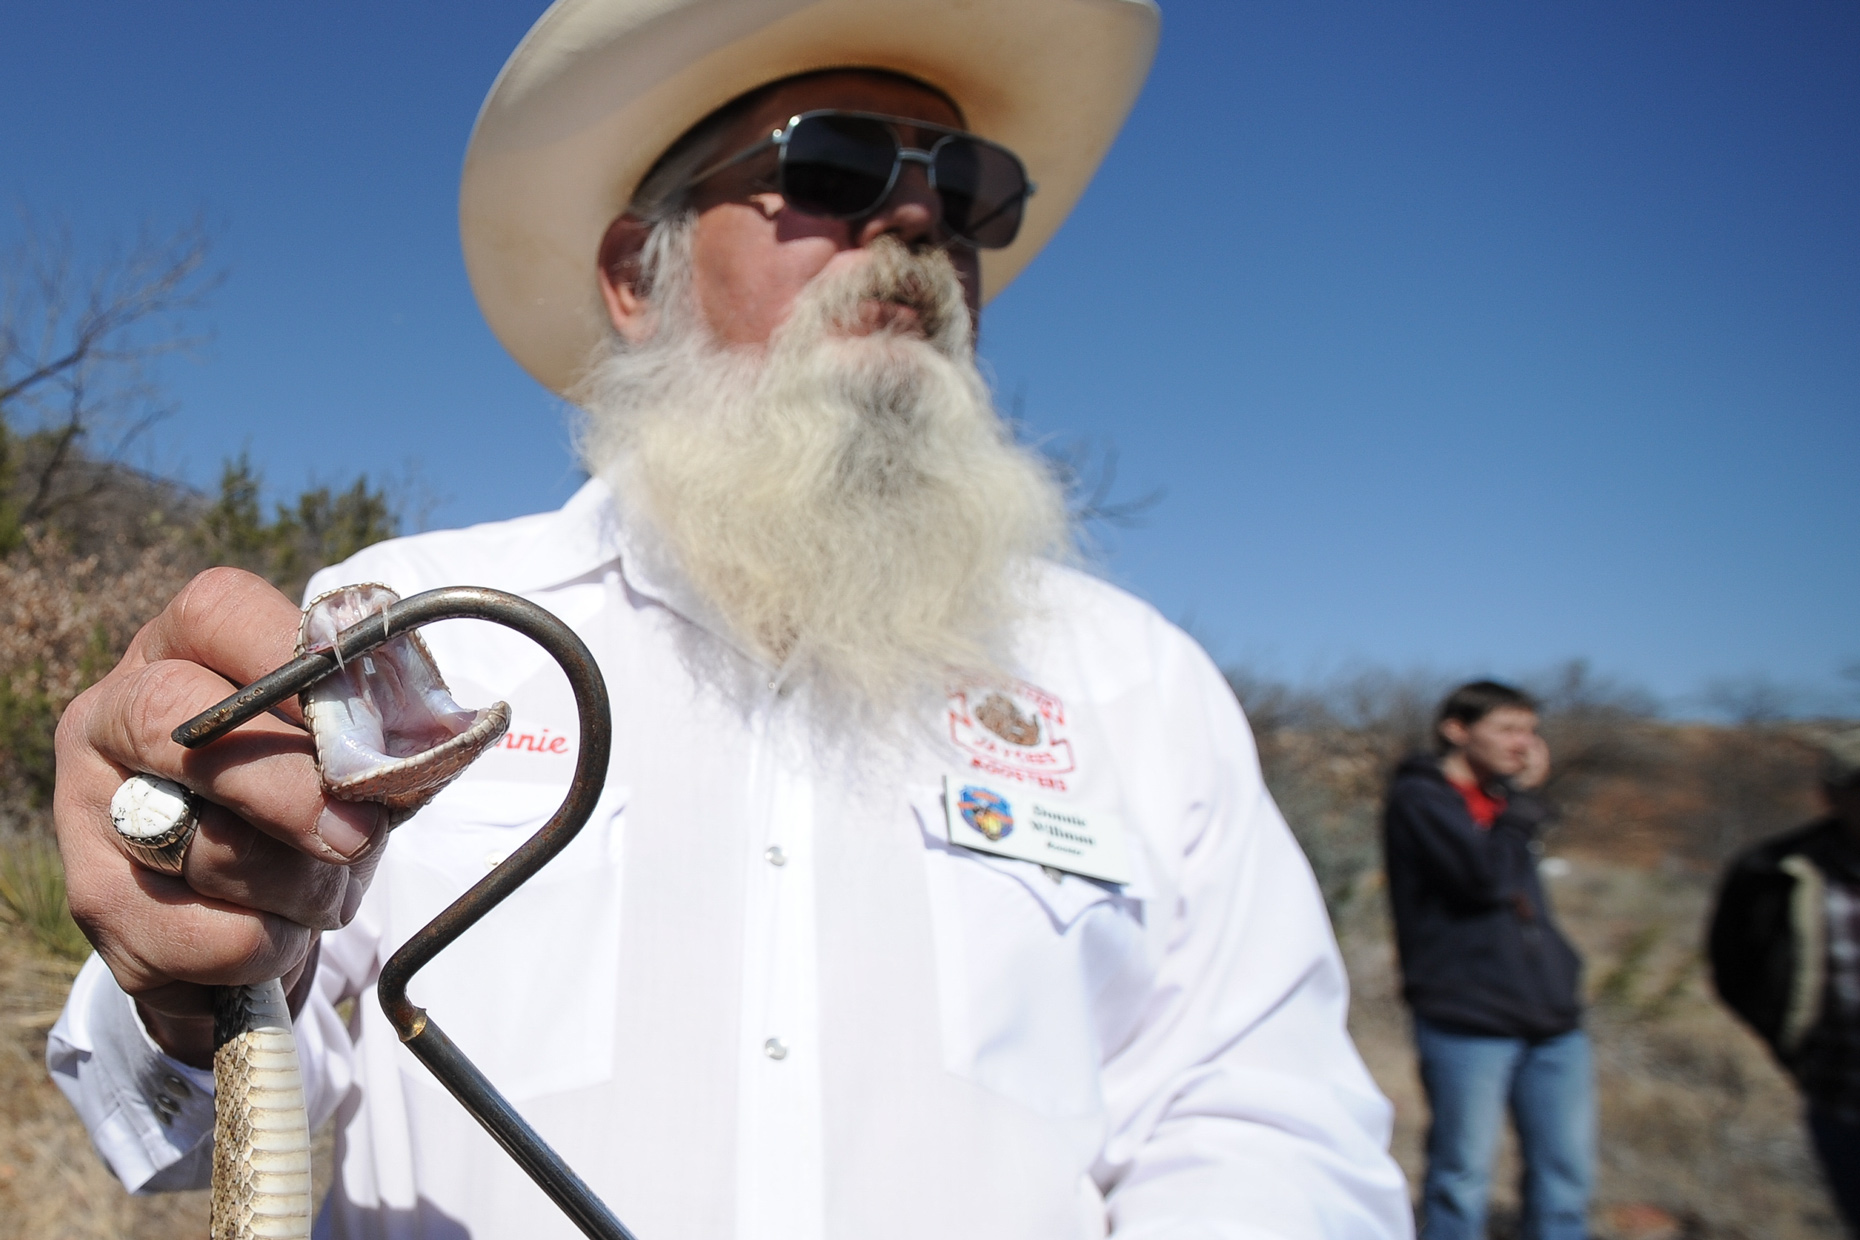 Sweetwater Rattlesnake Roundup photo series by editorial photographer Kevin Brown